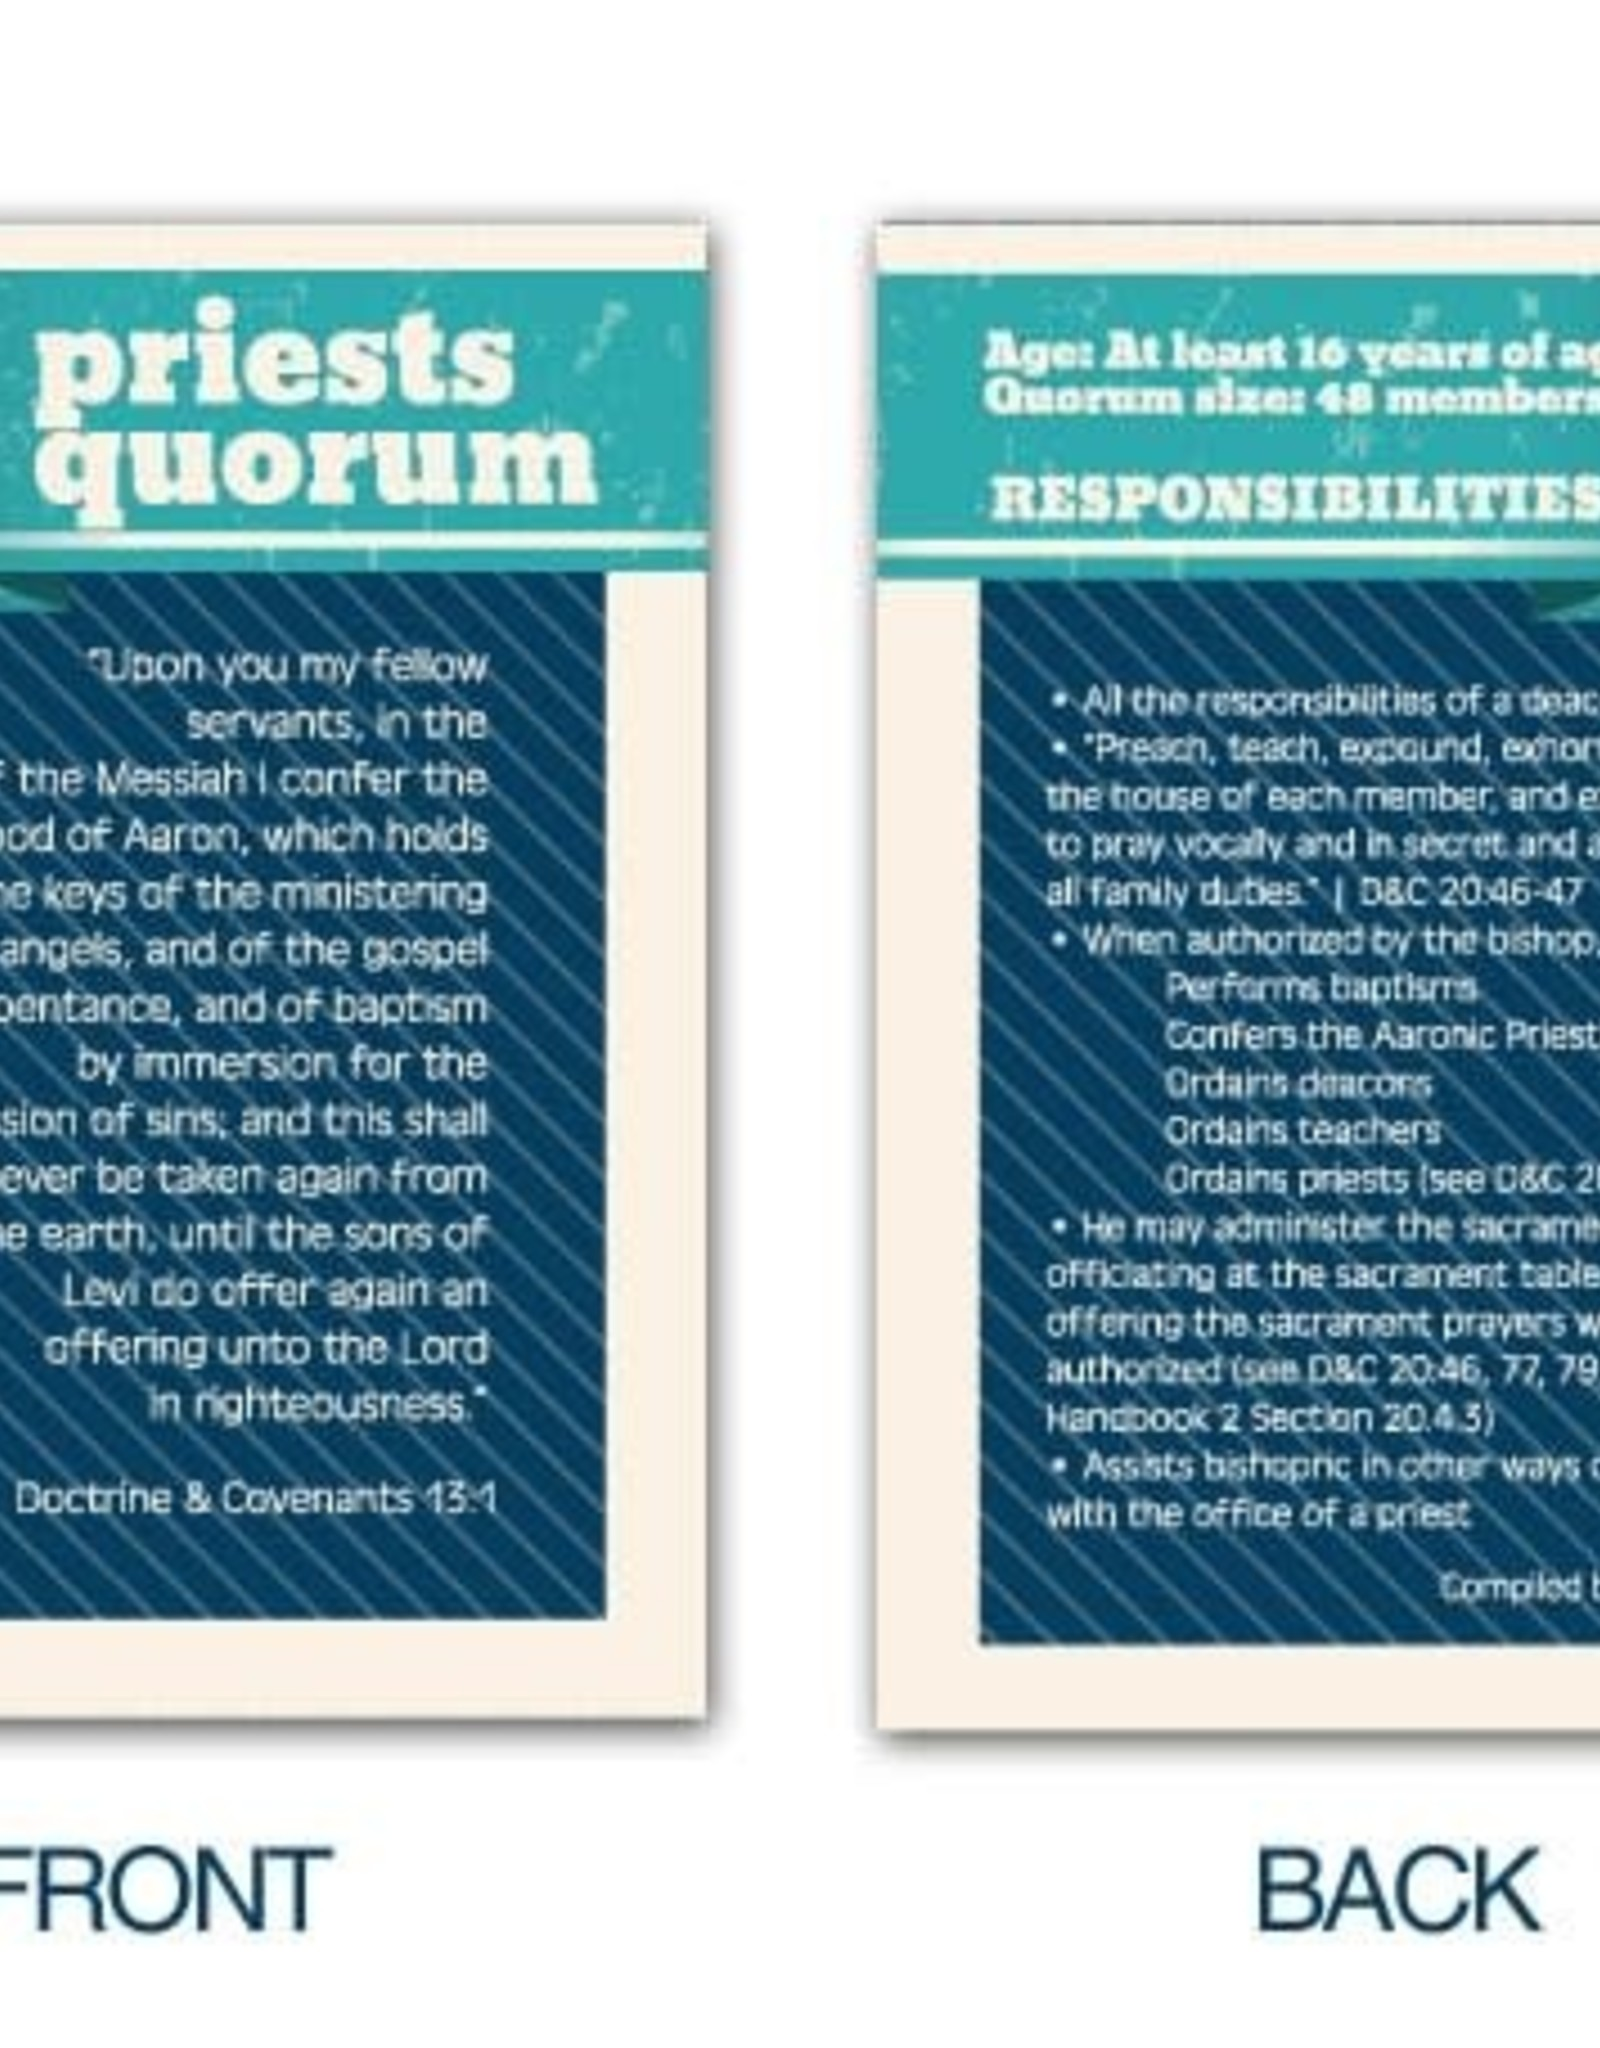 PRIESTS QUORUM POCKET CARDS